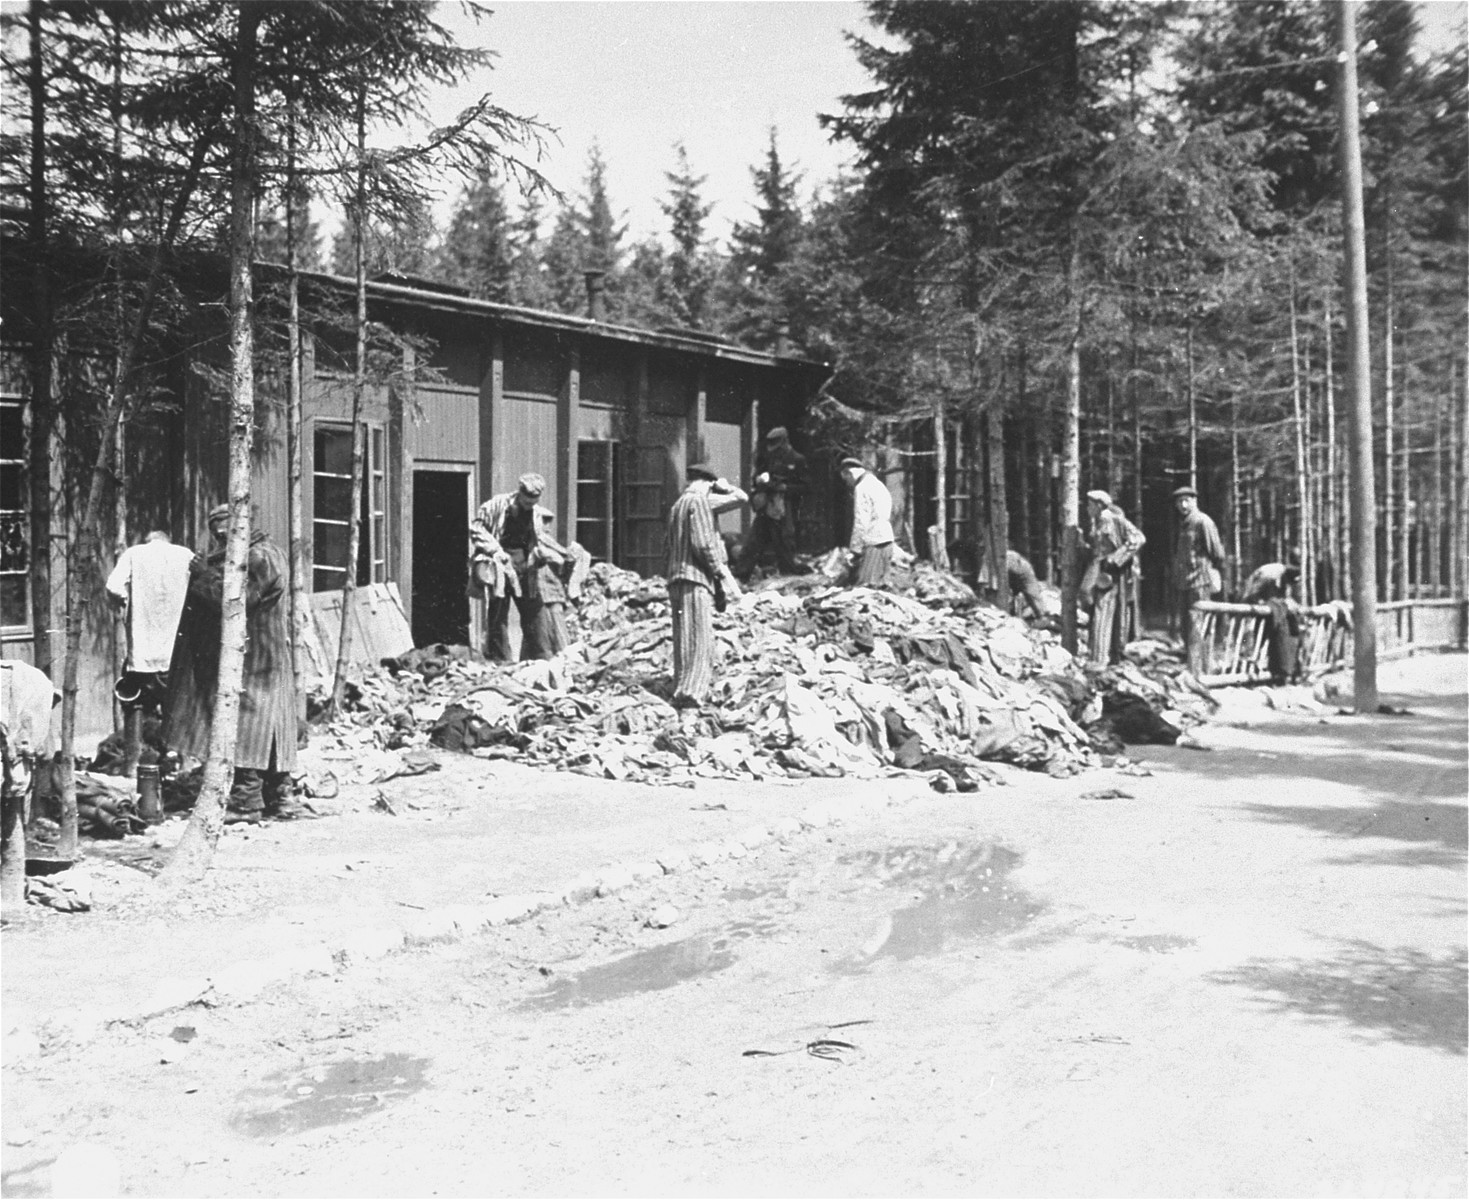 Survivors rummage through piles of clothing outside a barracks in the newly liberated Ebensee concentration camp.